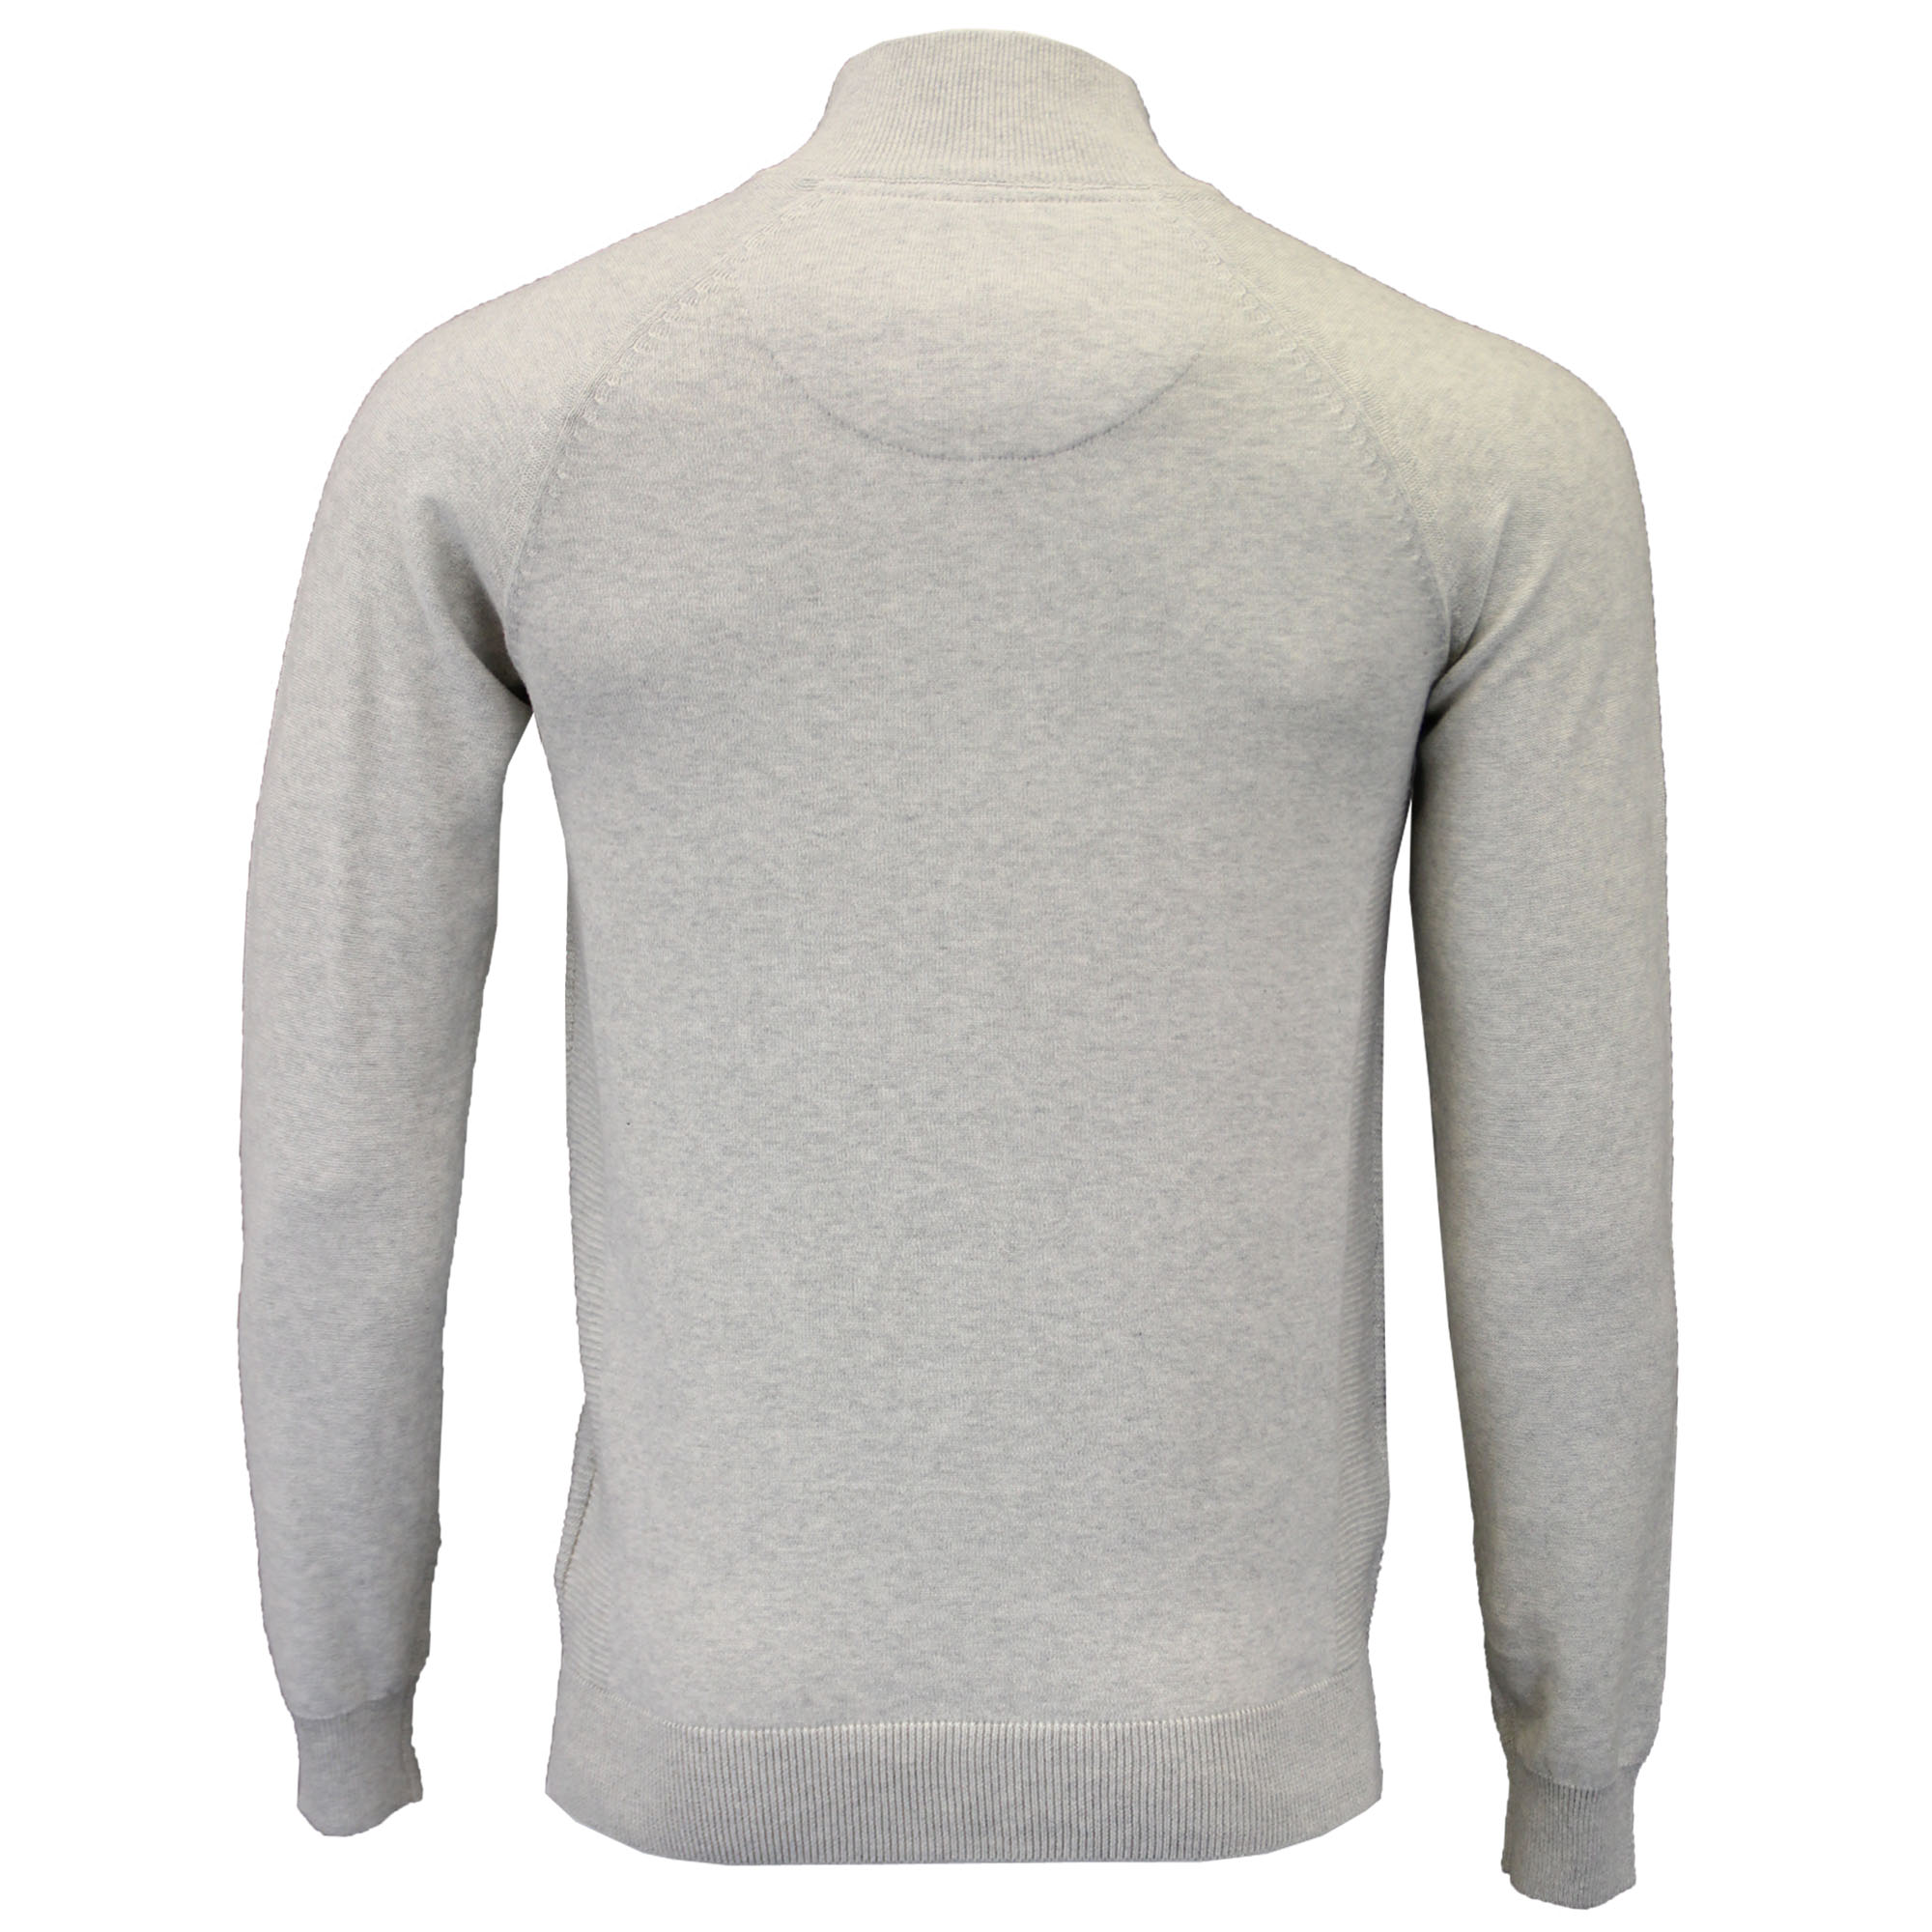 Mens-Jumper-Threadbare-Knitted-Cotton-Sweater-Half-Zip-Pullover-Top-Winter-New thumbnail 3